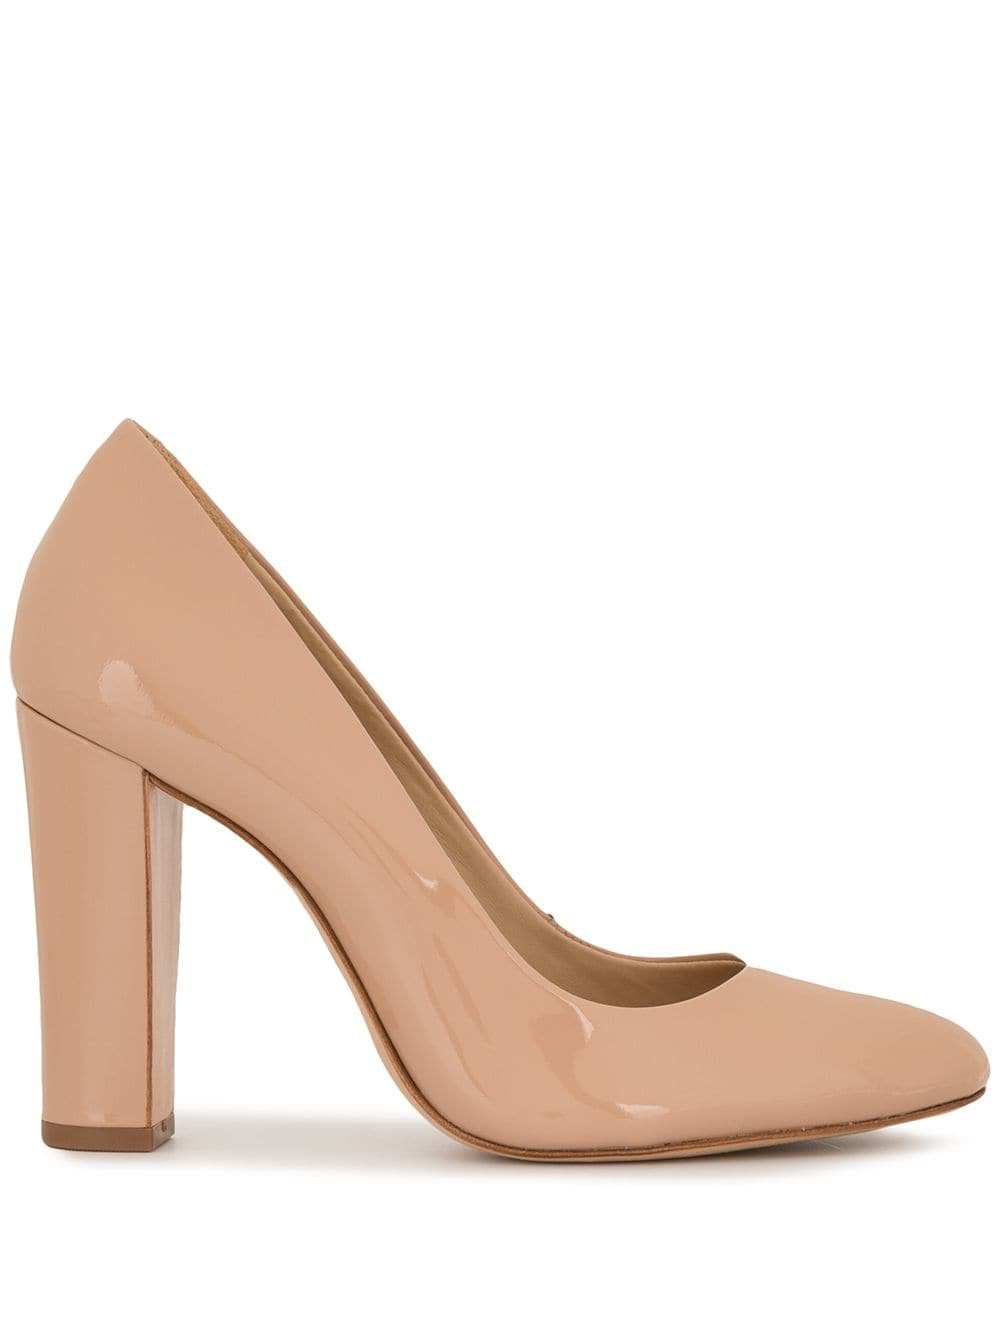 Neutral Schutz Chunky Heel Pumps | Farfetch.com